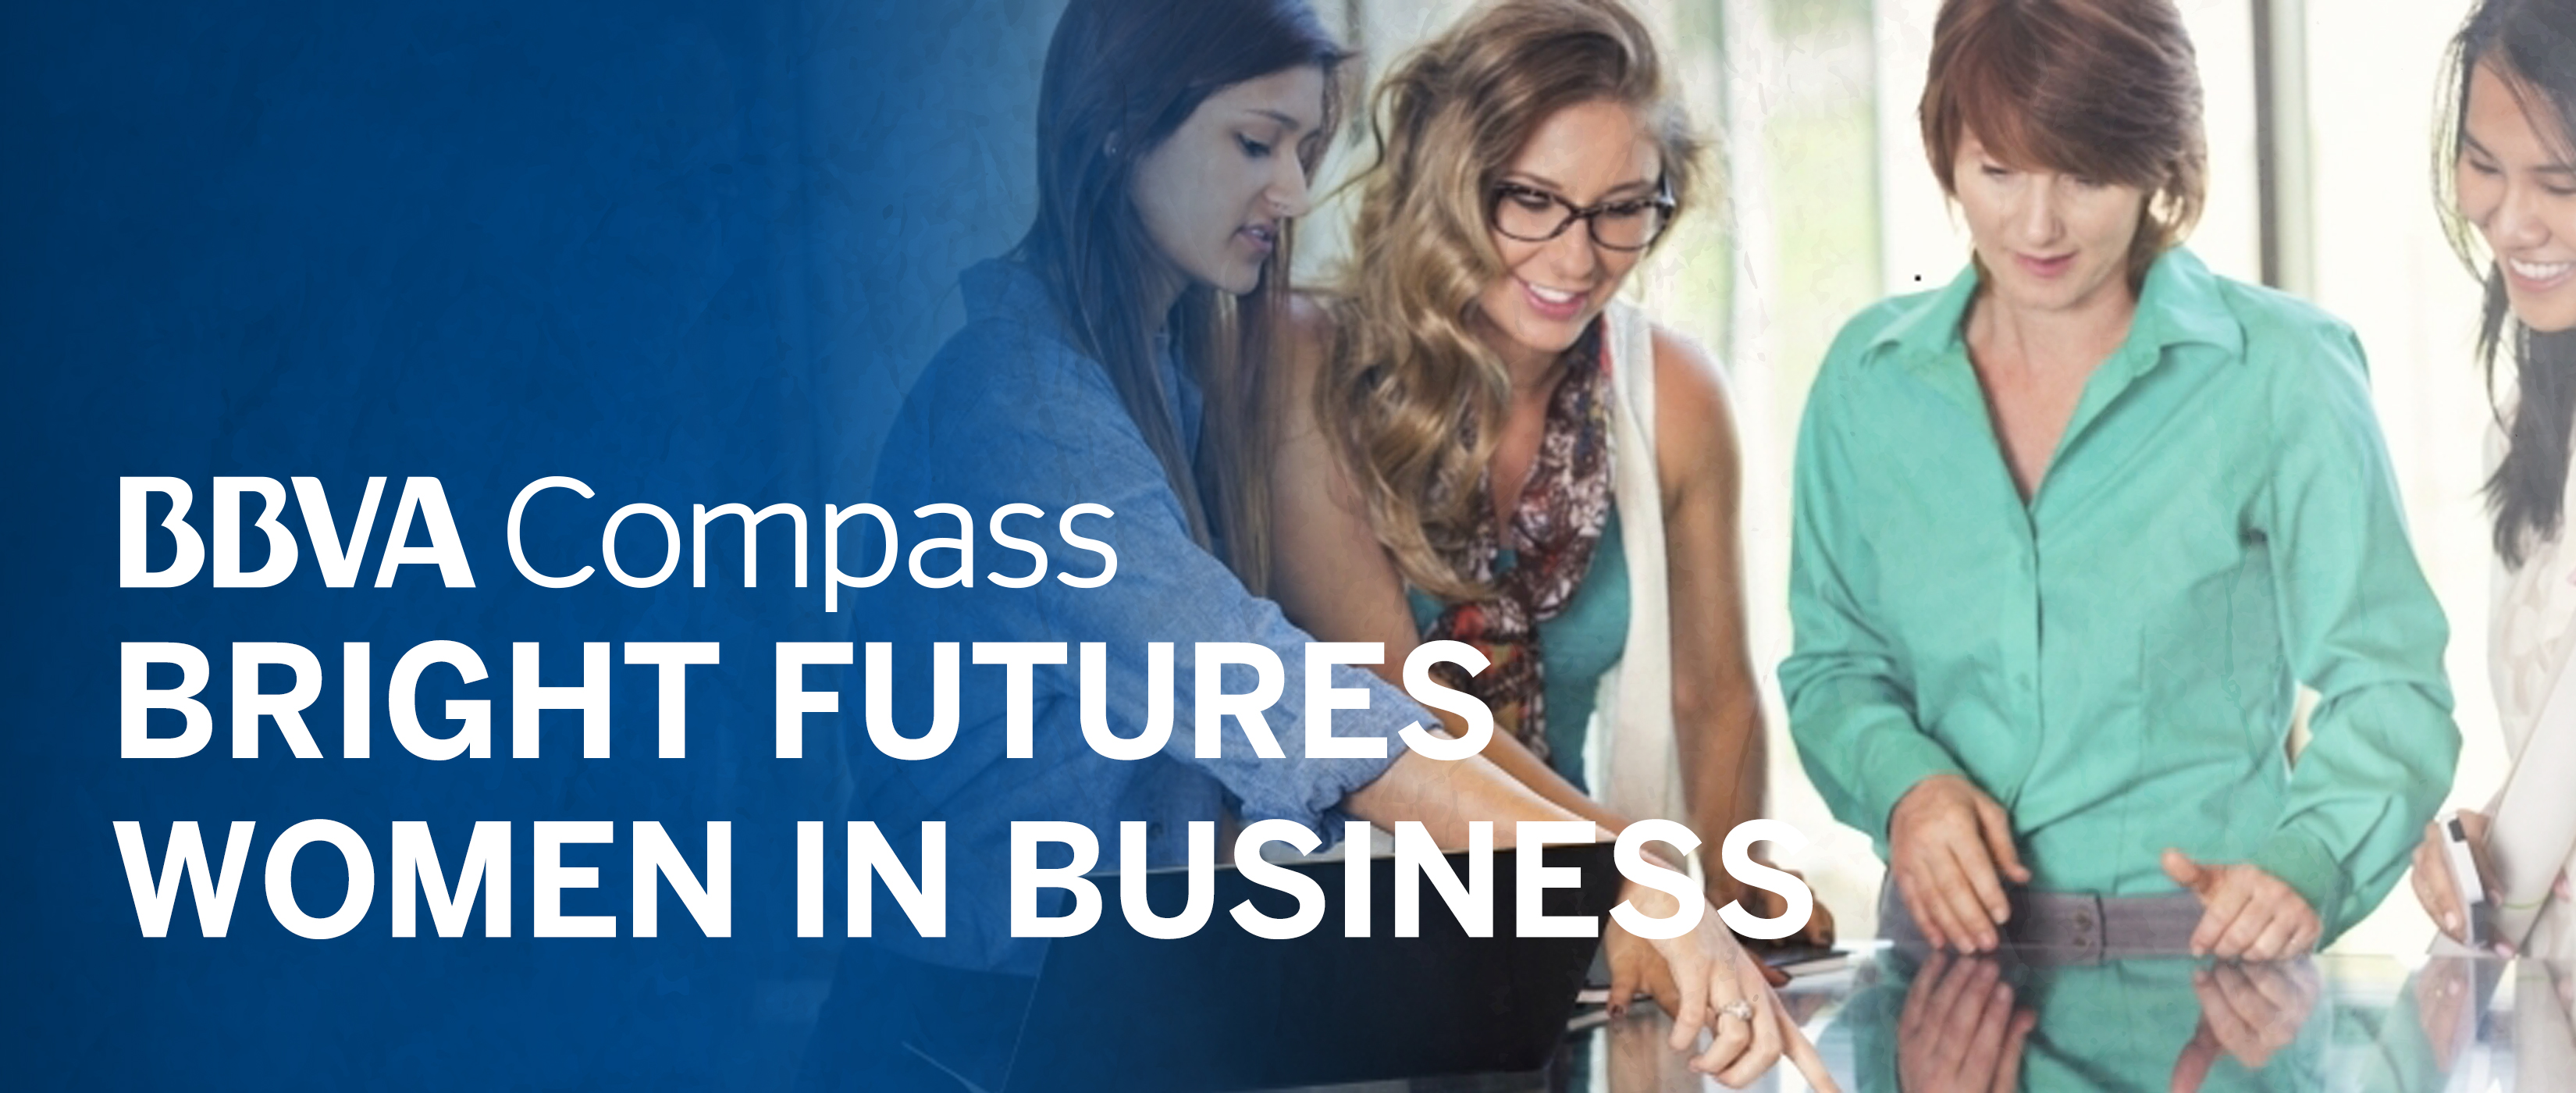 BBVA Compass Bright Futures Women in Business